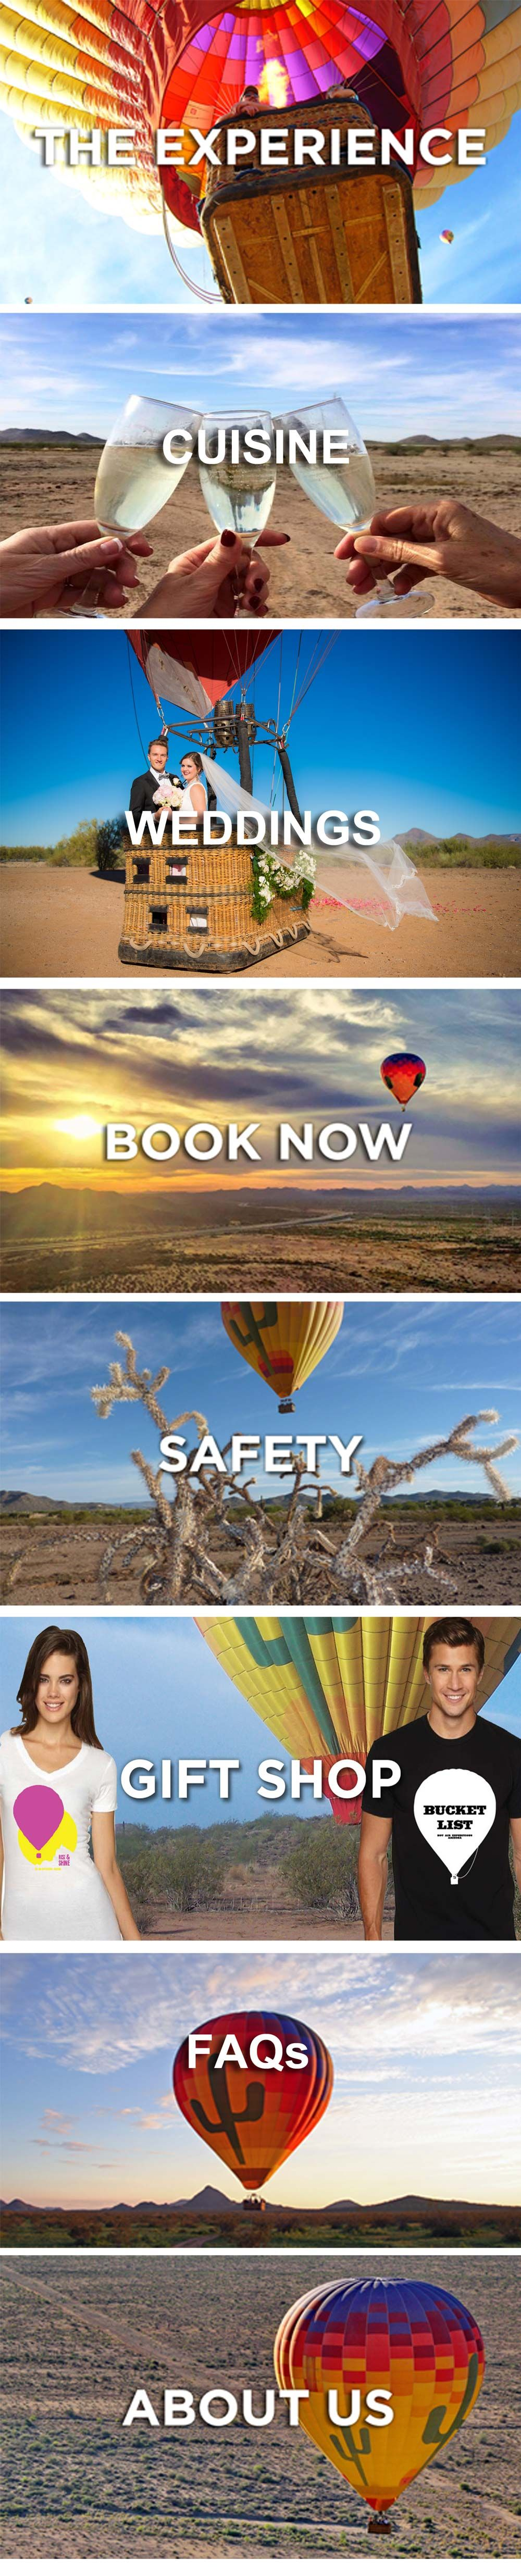 Phoenix Hot Air Balloon rides and excursions by Hot Air